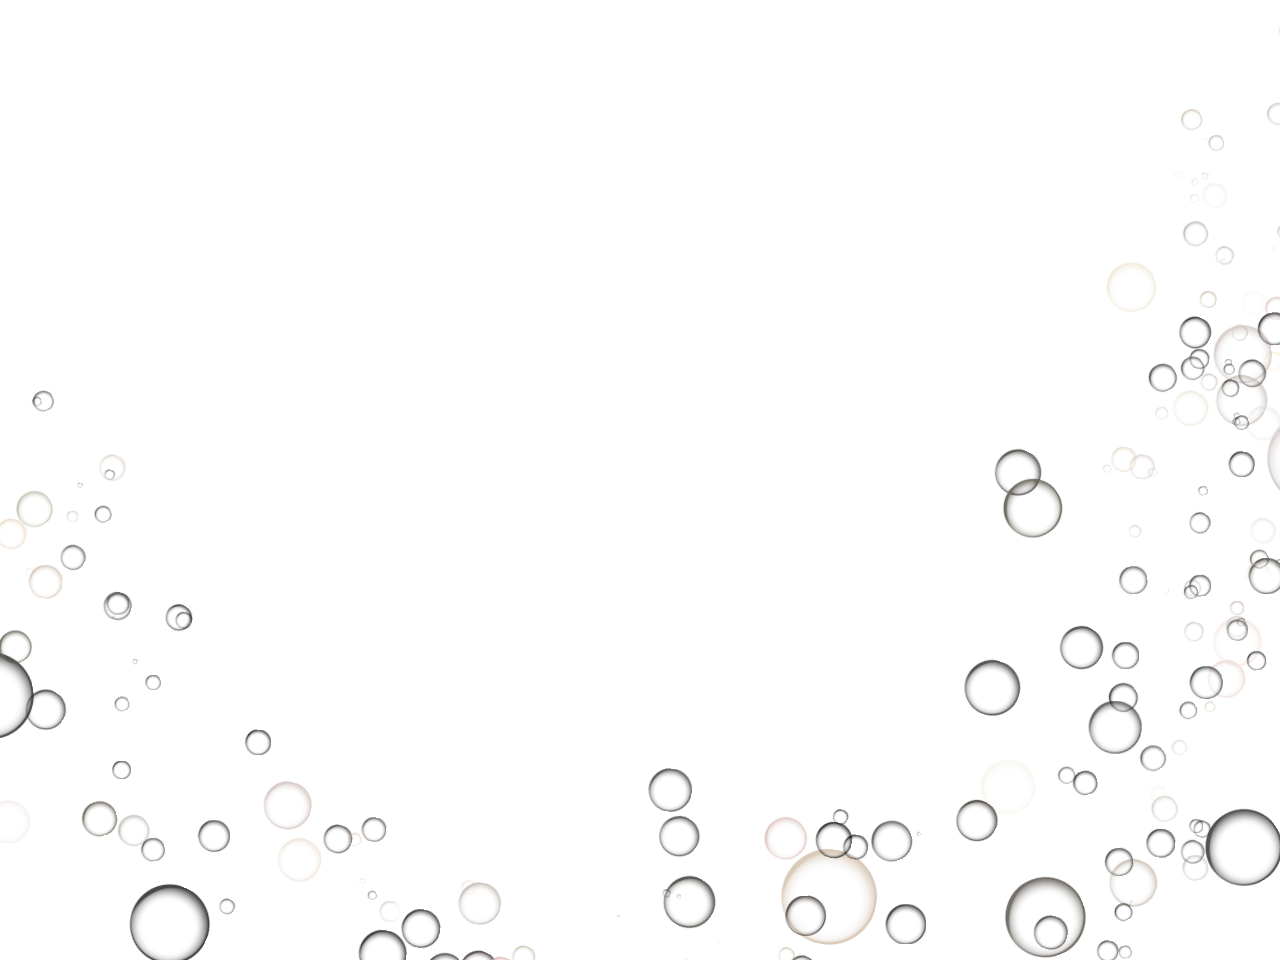 bubble png transparent bubble images pluspng #30846